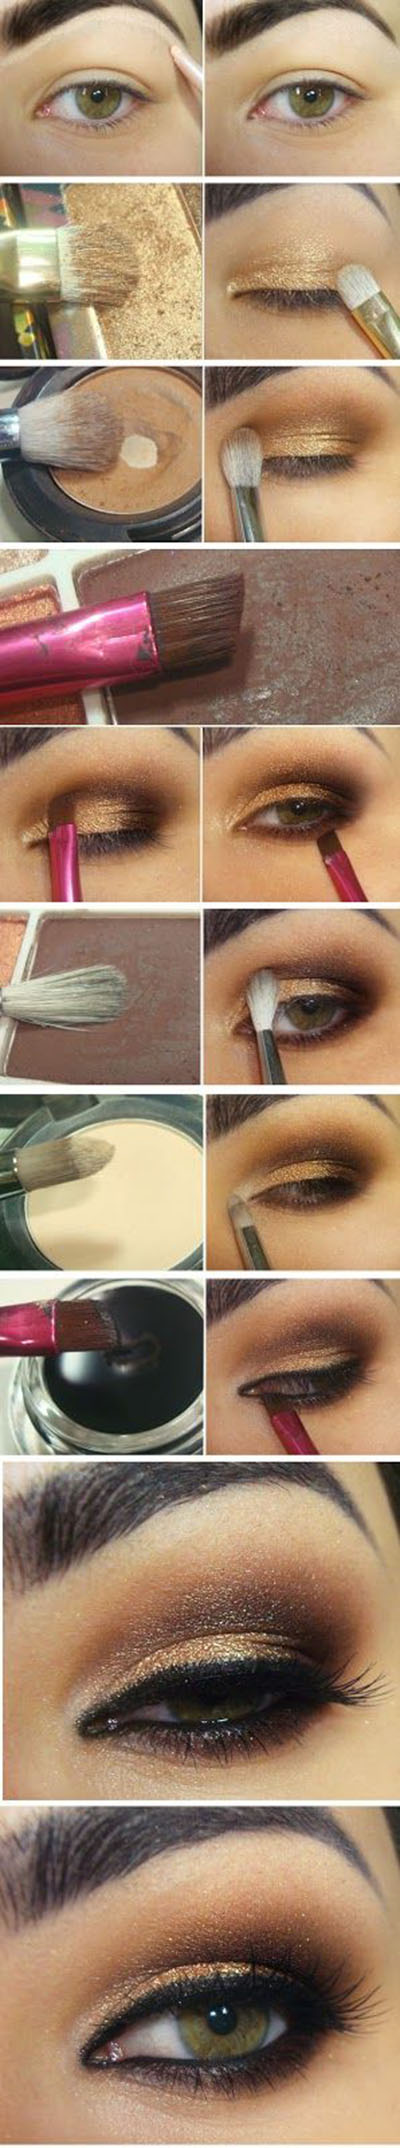 19  Gold and Brown Inspired Makeup Tutorials46f32187e